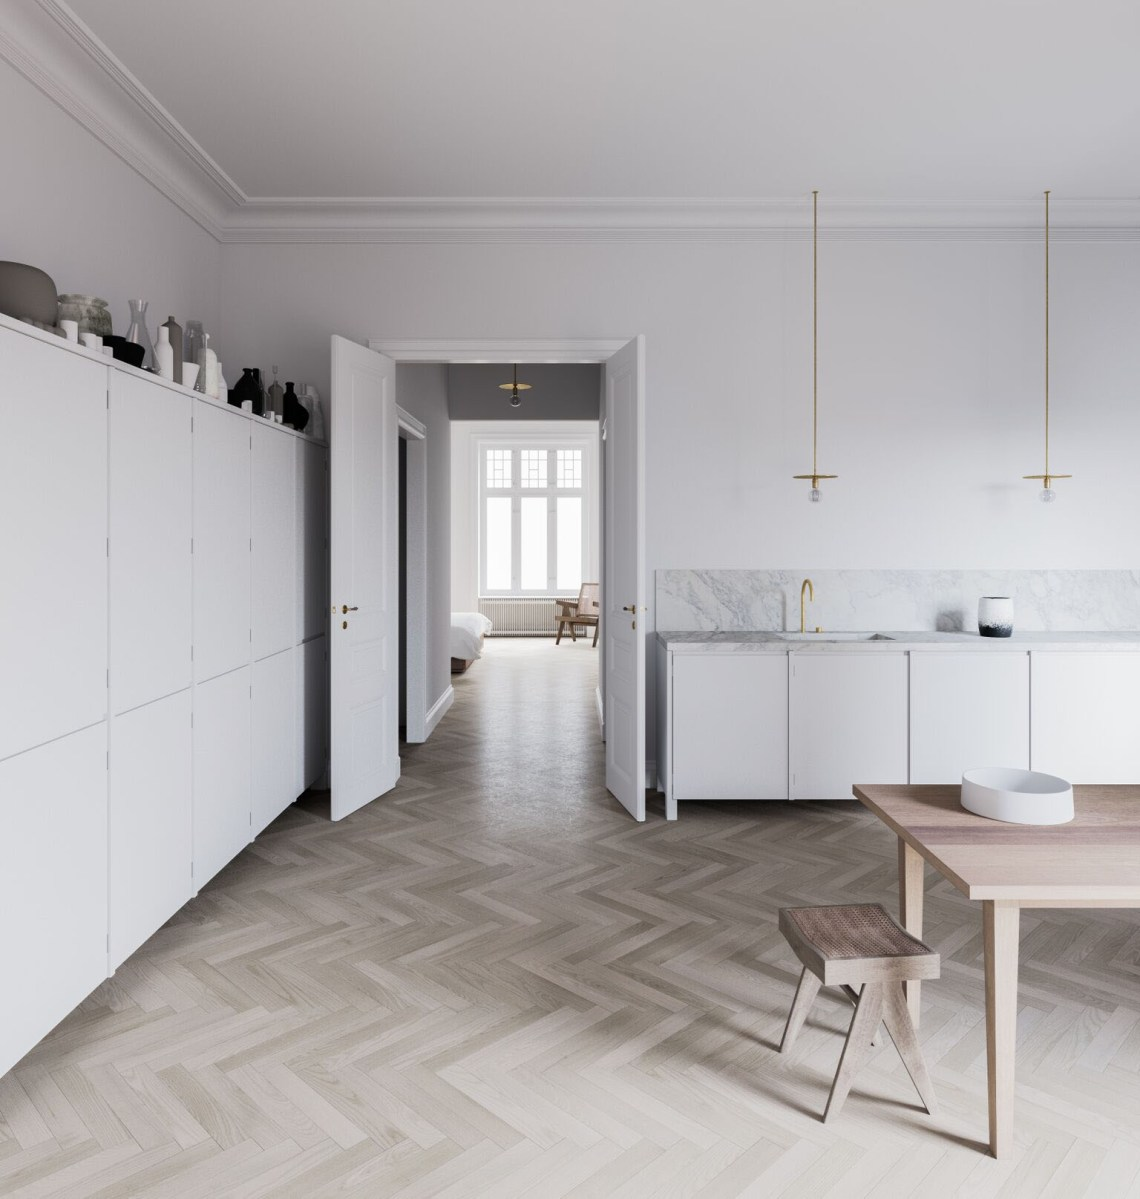 Stockholm apartment visualisation by Andreu Taberner